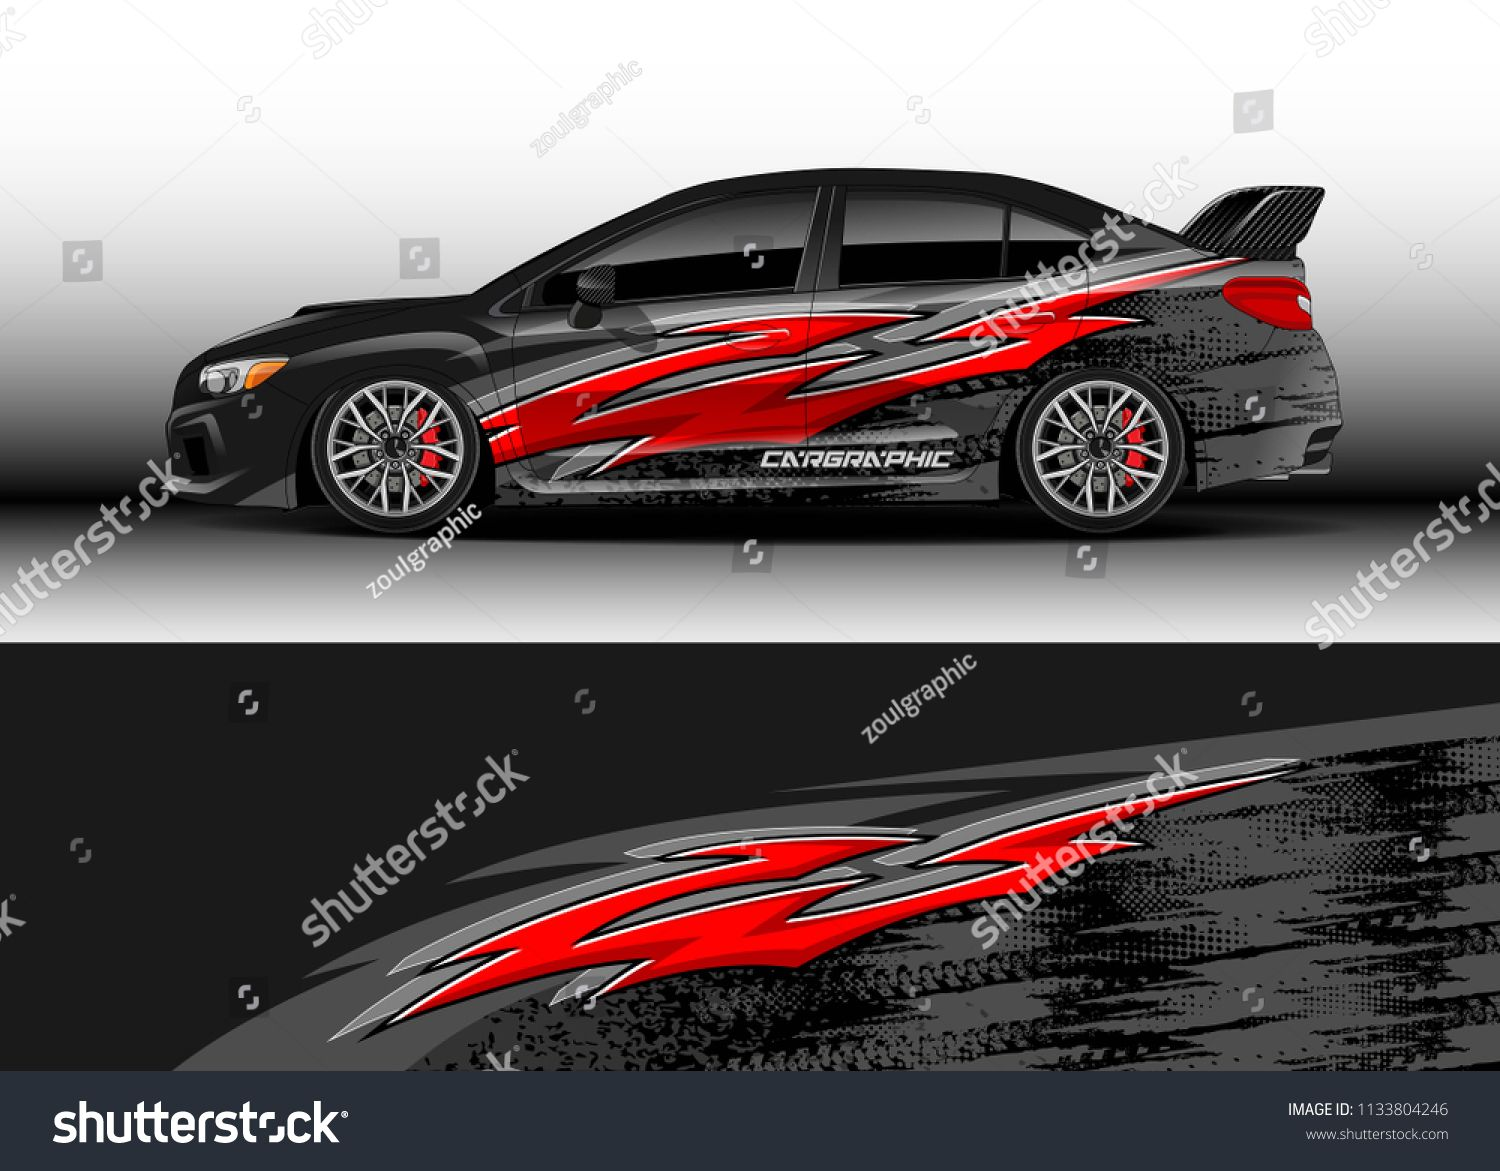 car decal graphic vector  wrap vinyl sticker  graphic abstract stripe designs for race and drift